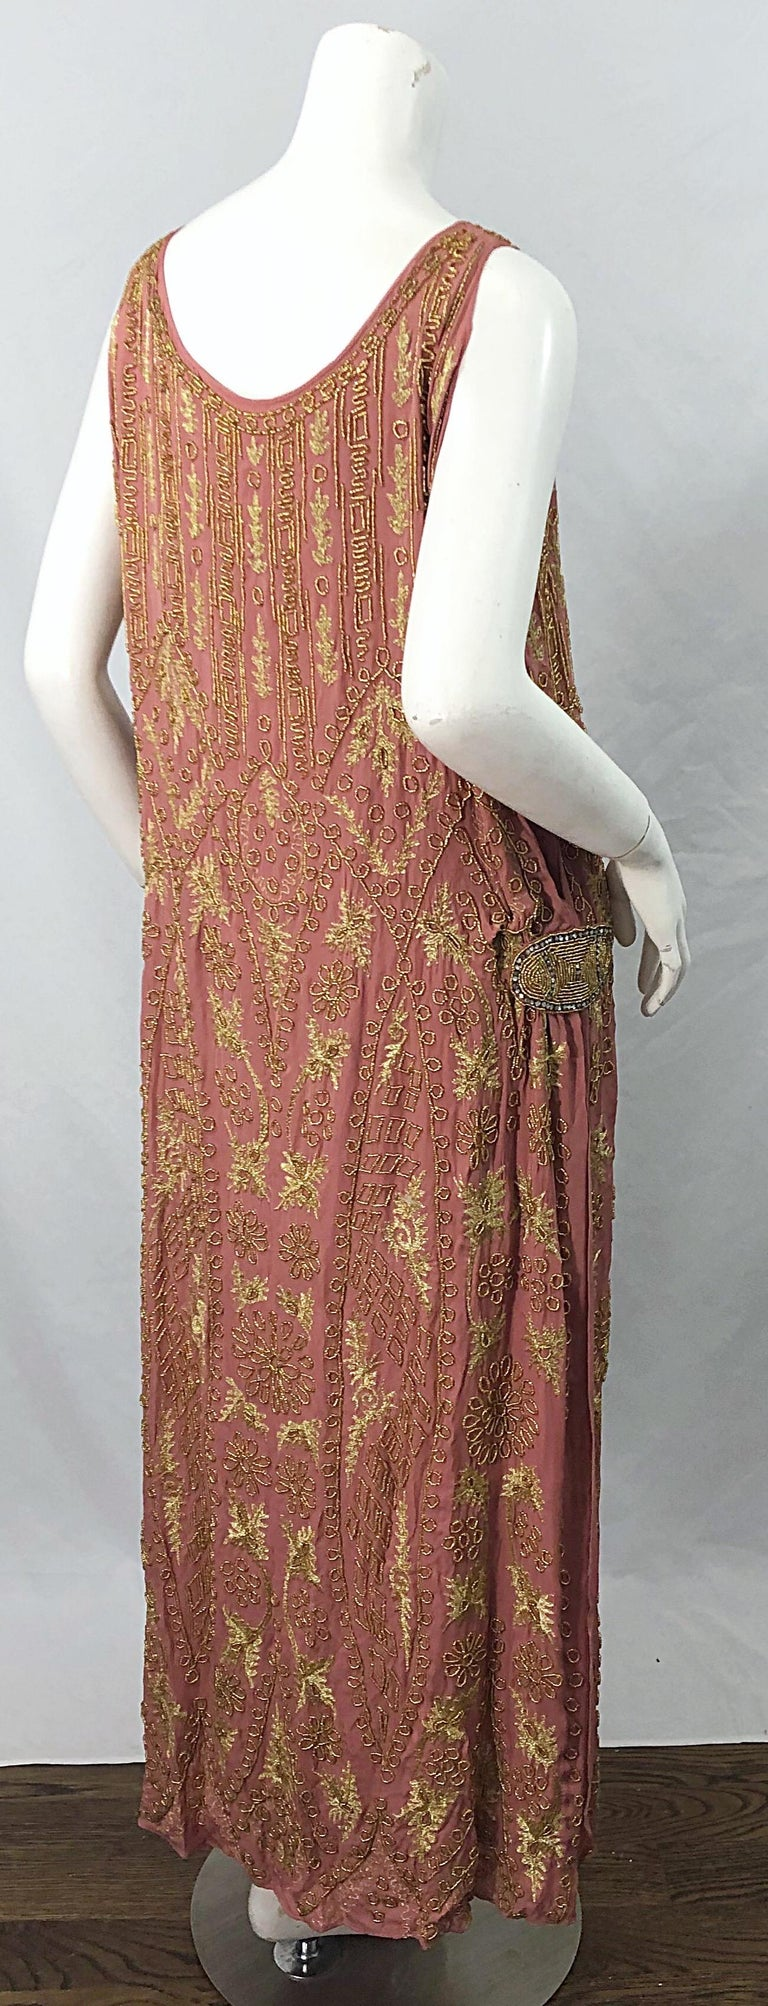 1920s French Couture Pink + Gold Beaded Gatsby Roaring 20s Vintage Flapper Dress For Sale 2